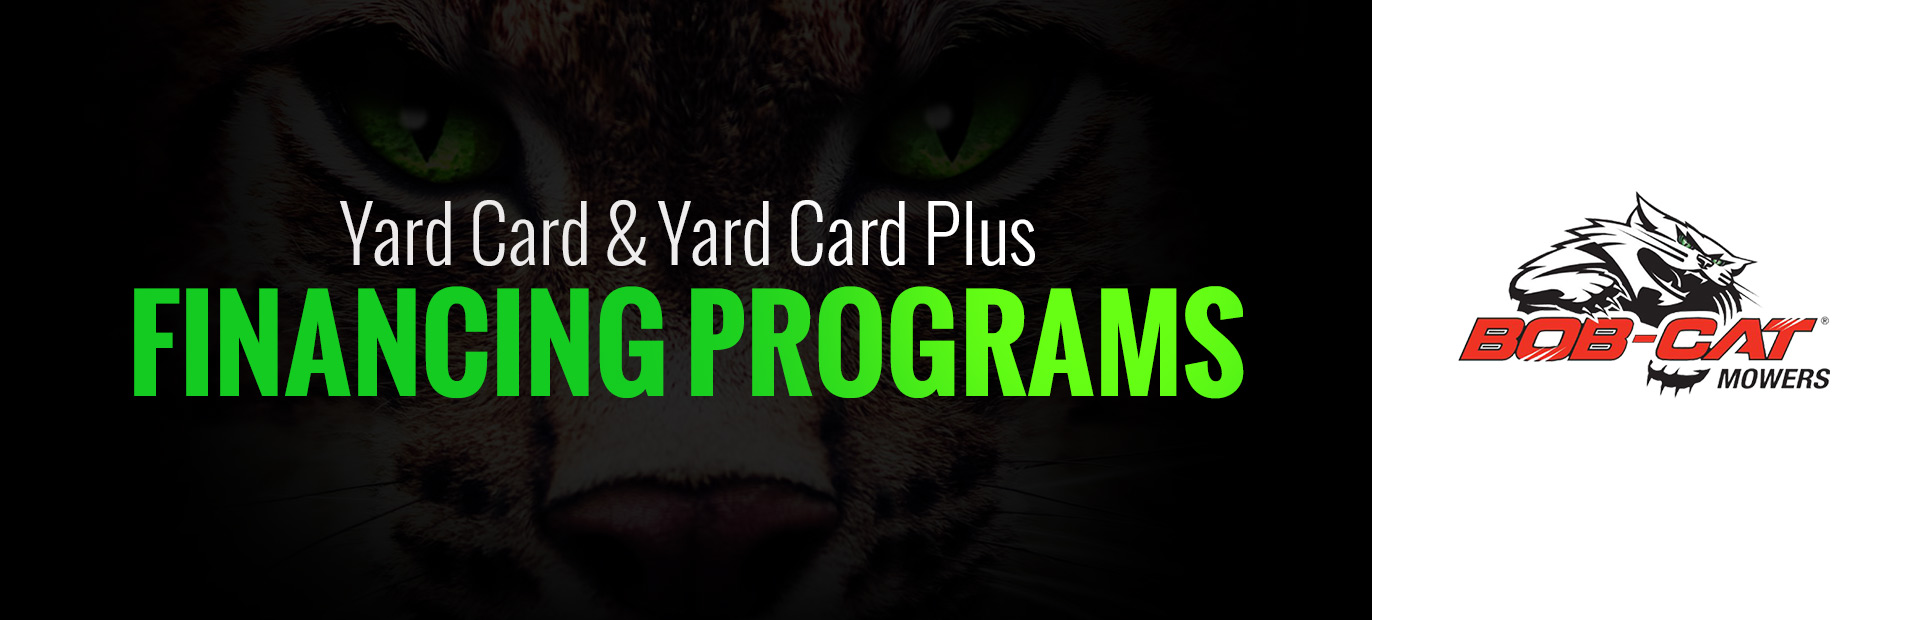 BOB-CAT®: Yard Card and Yard Card Plus Financing Programs